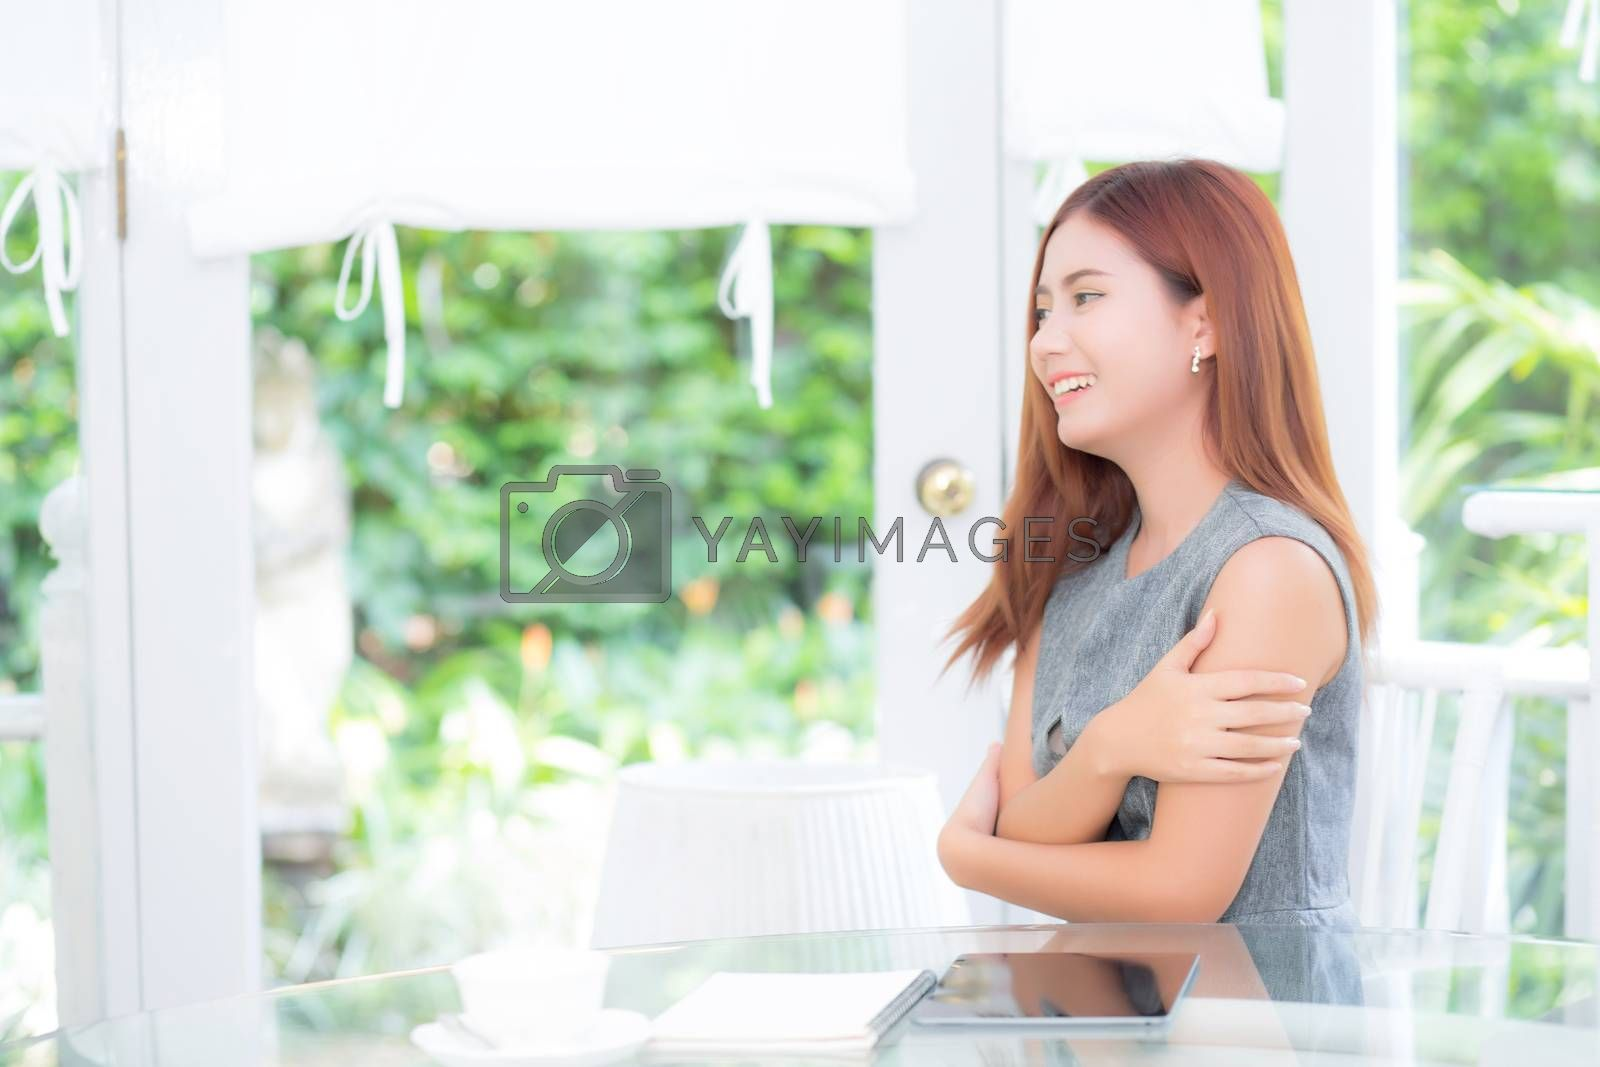 Beautiful of portrait businesswoman have enjoy in the garden with tablet and book, woman relax sitting in the park with smile and happy, communication and lifestyle concept.